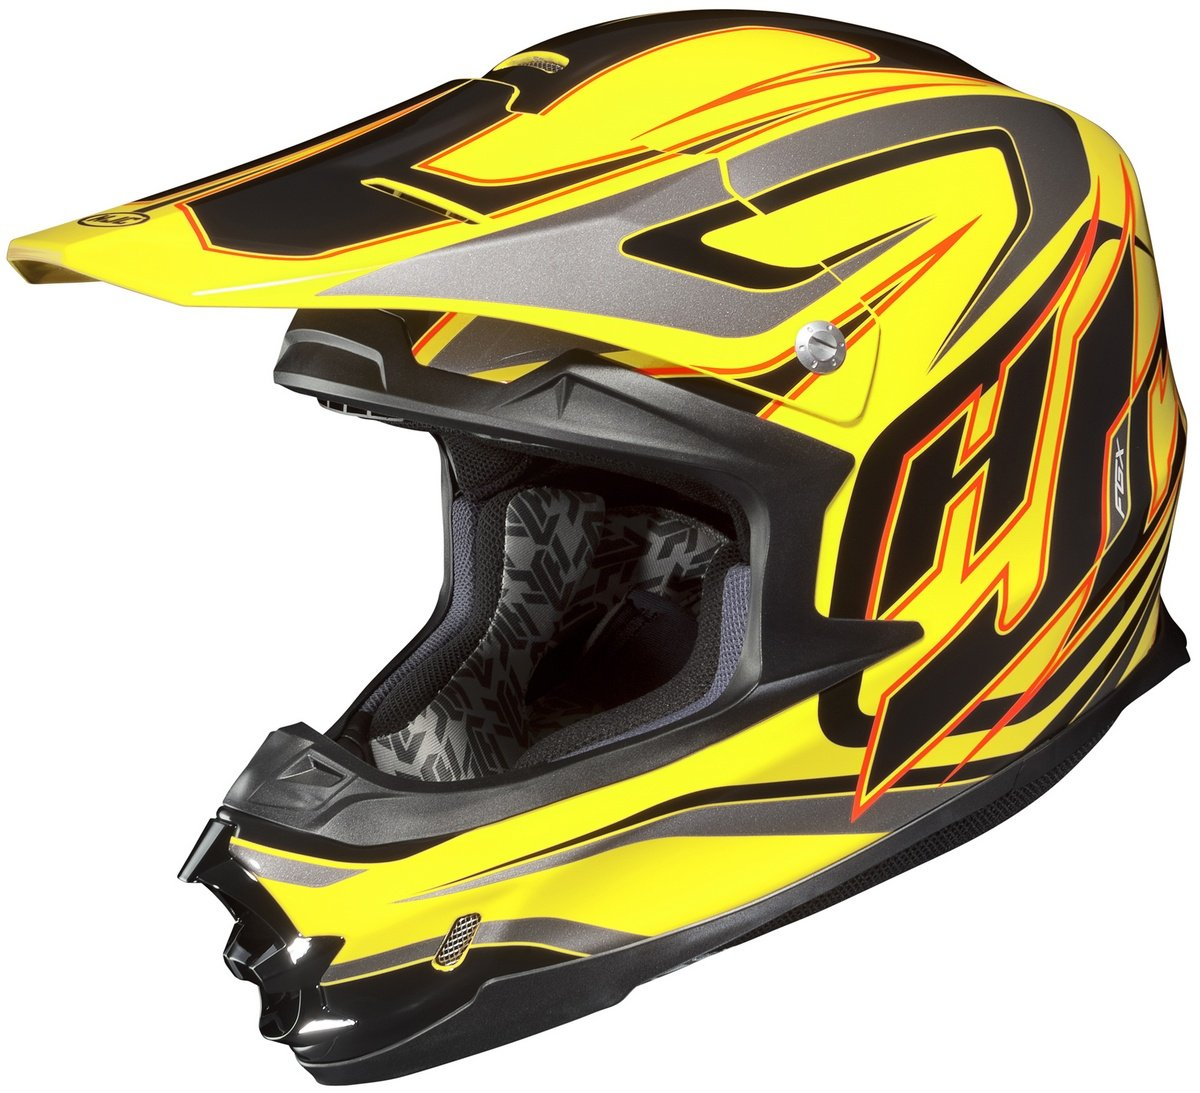 Amazon.com: HJC Hammer Mens FG-X MX/Off-Road/Dirt Bike Motorcycle Helmet - MC-3 / Large: Automotive